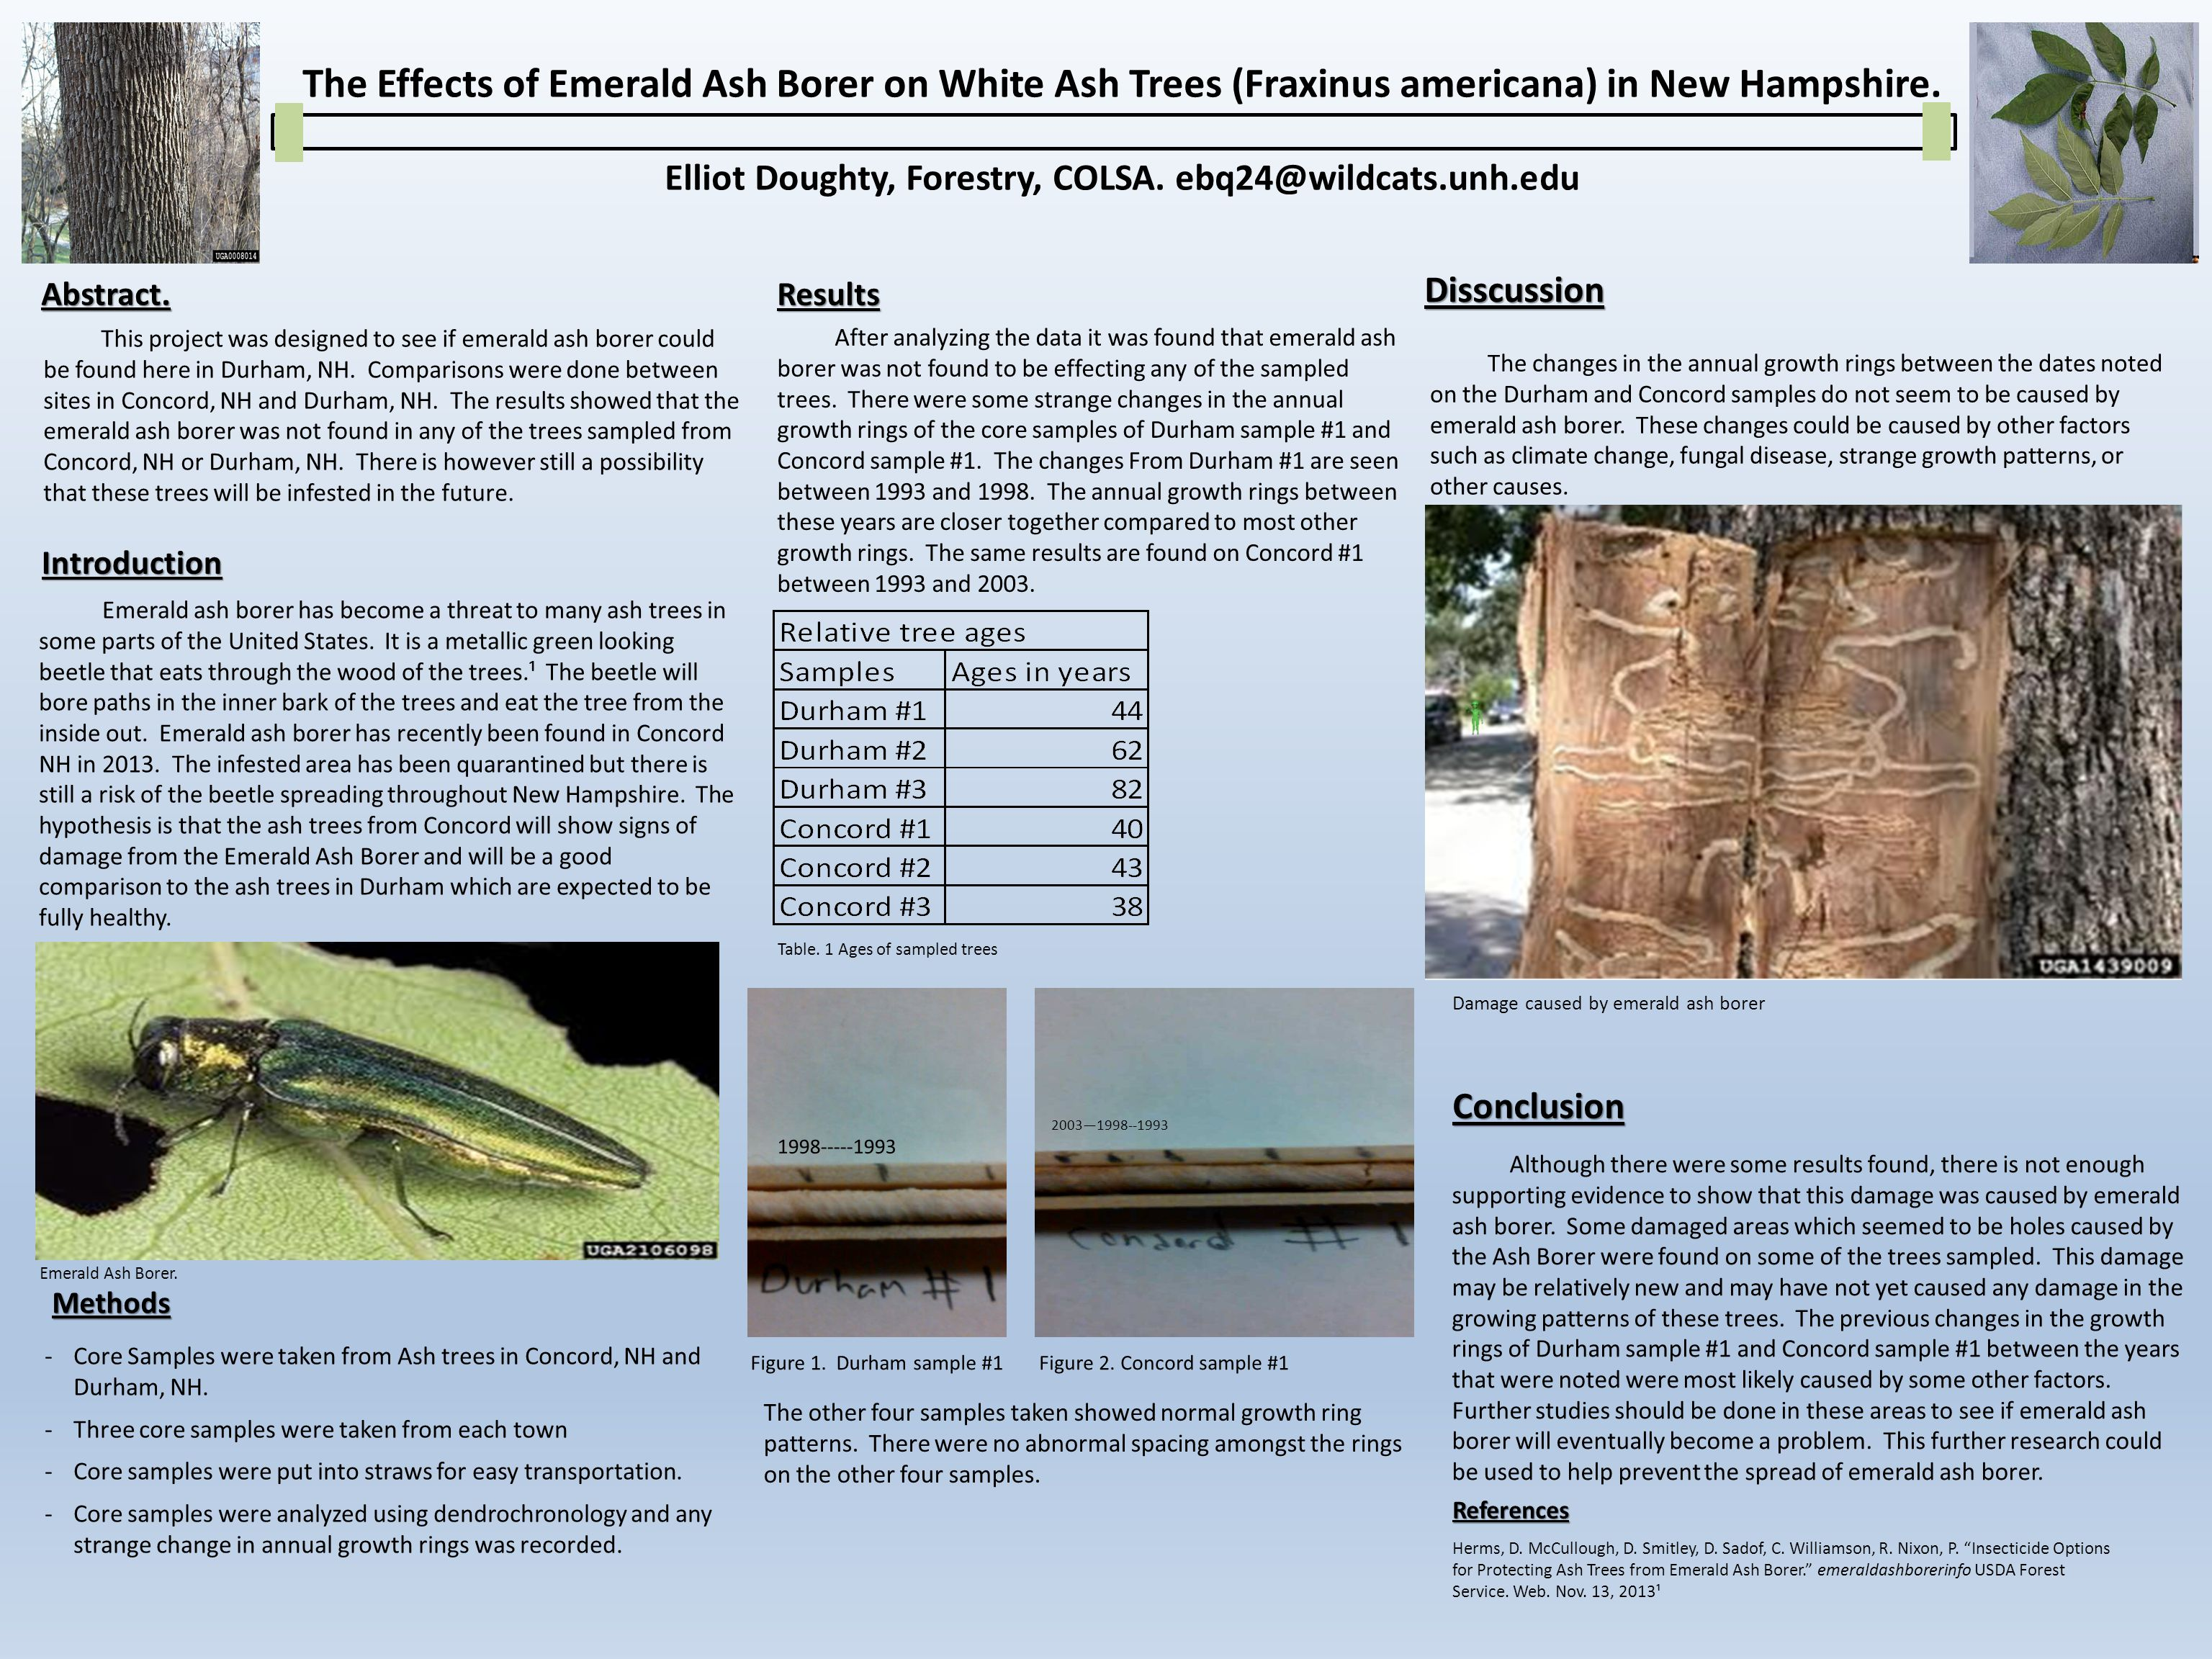 The Effects of Emerald Ash Borer on White Ash Trees (Fraxinus americana) in New Hampshire.